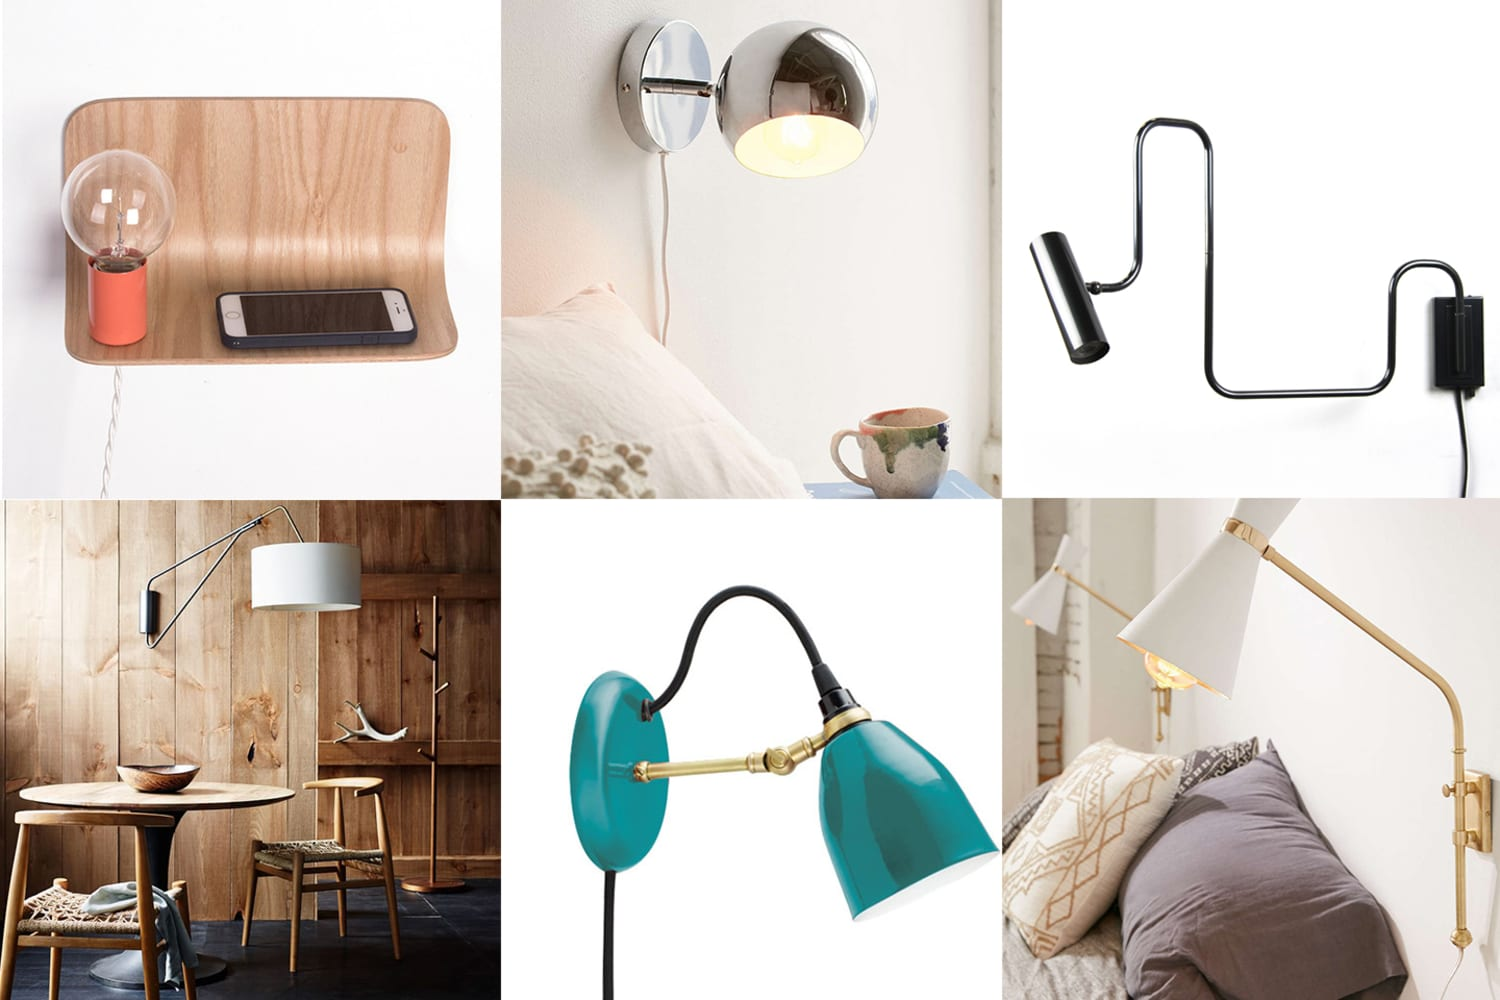 The Best Plug-in Sconces (No Electrician Needed!)